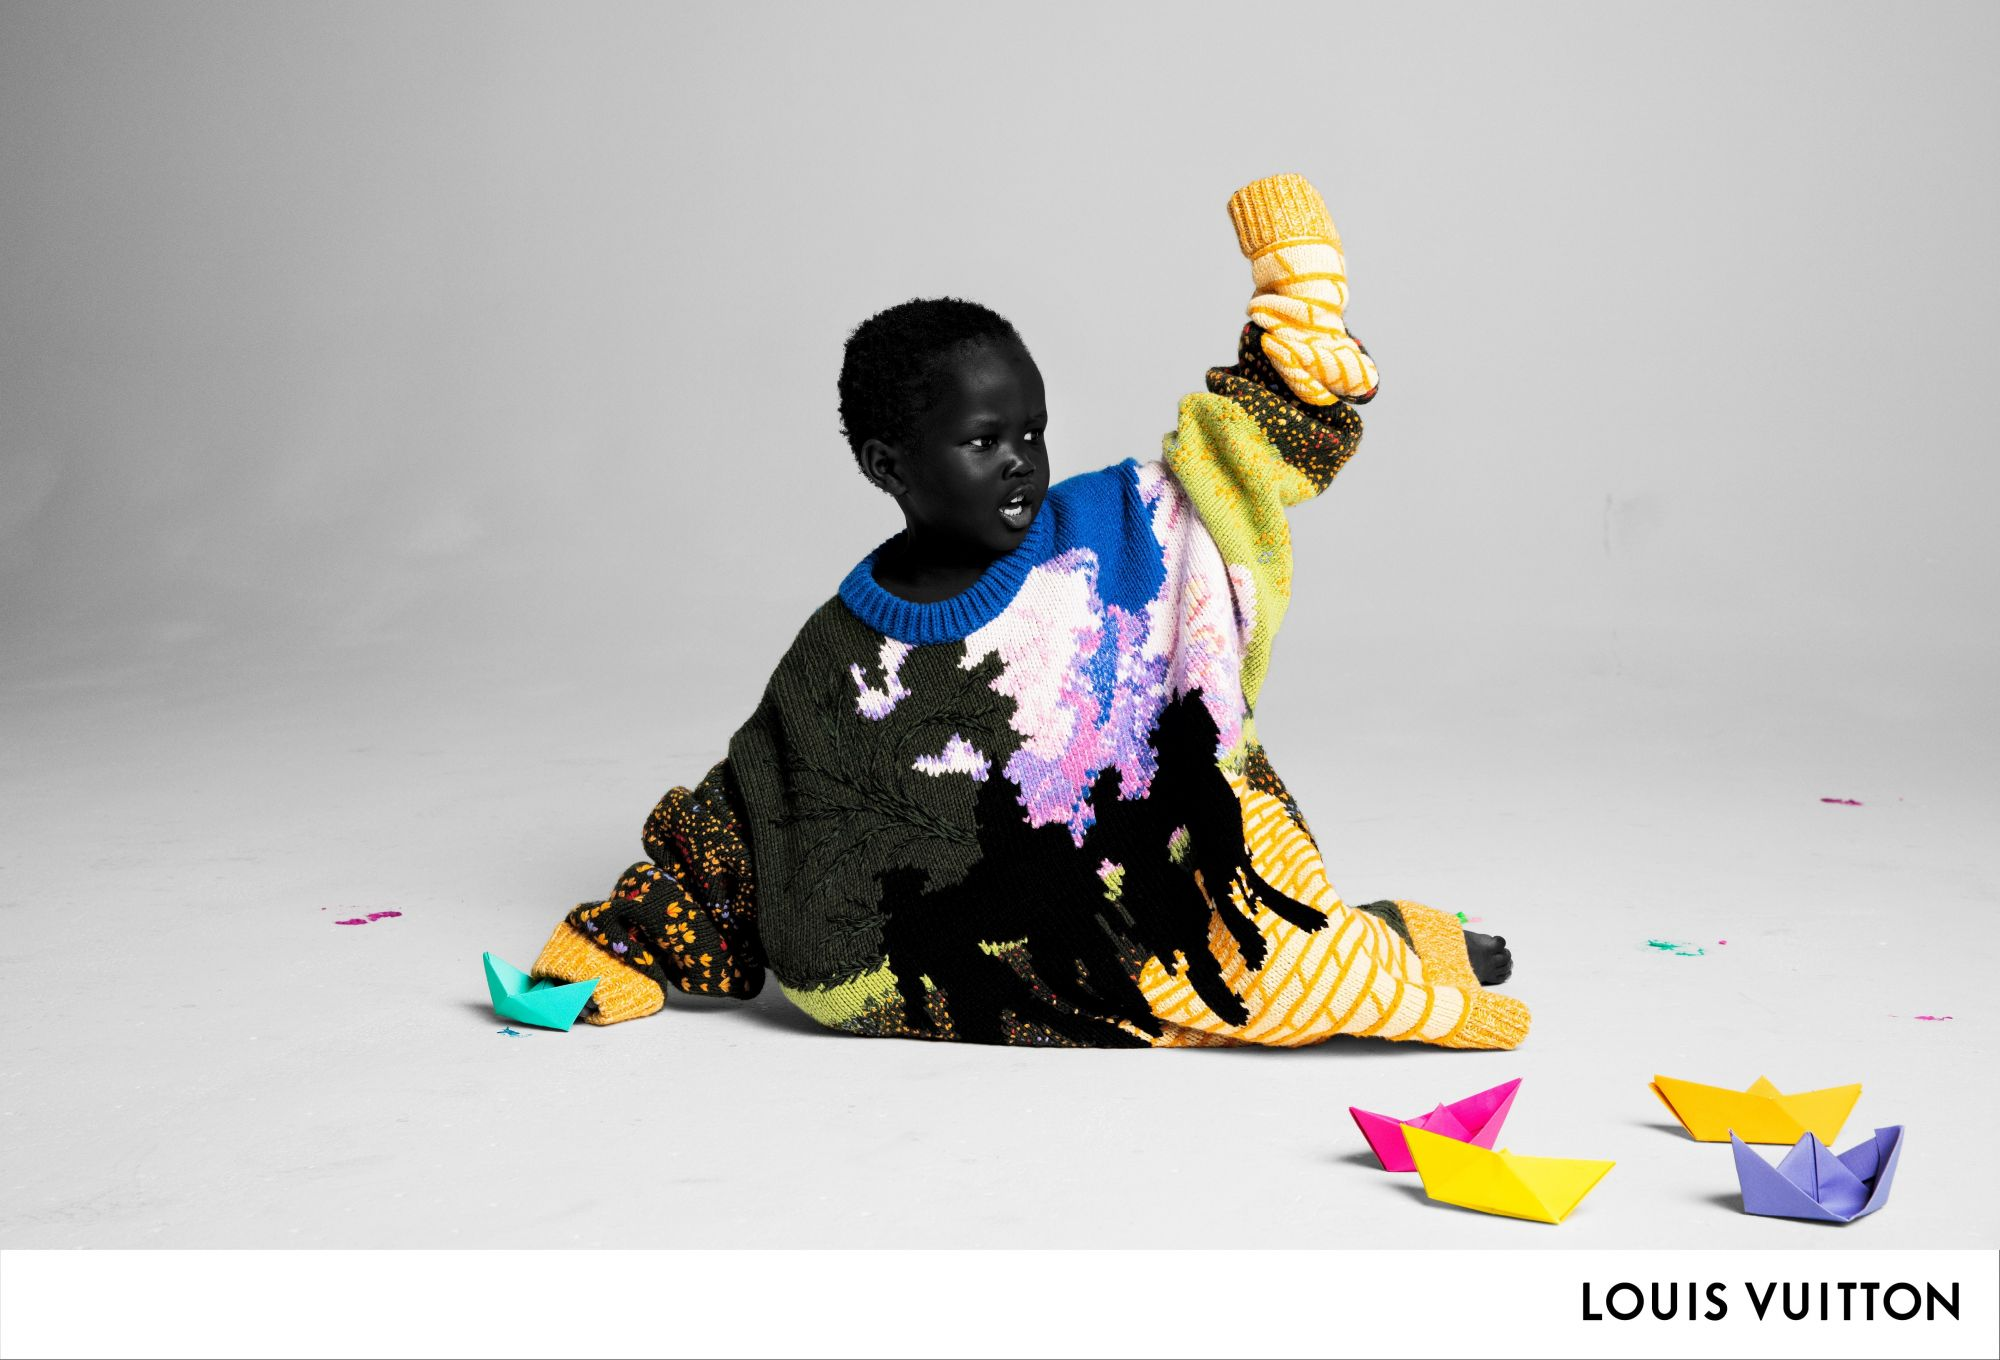 Virgil Abloh's First Campaign For Louis Vuitton Has The Cutest Models